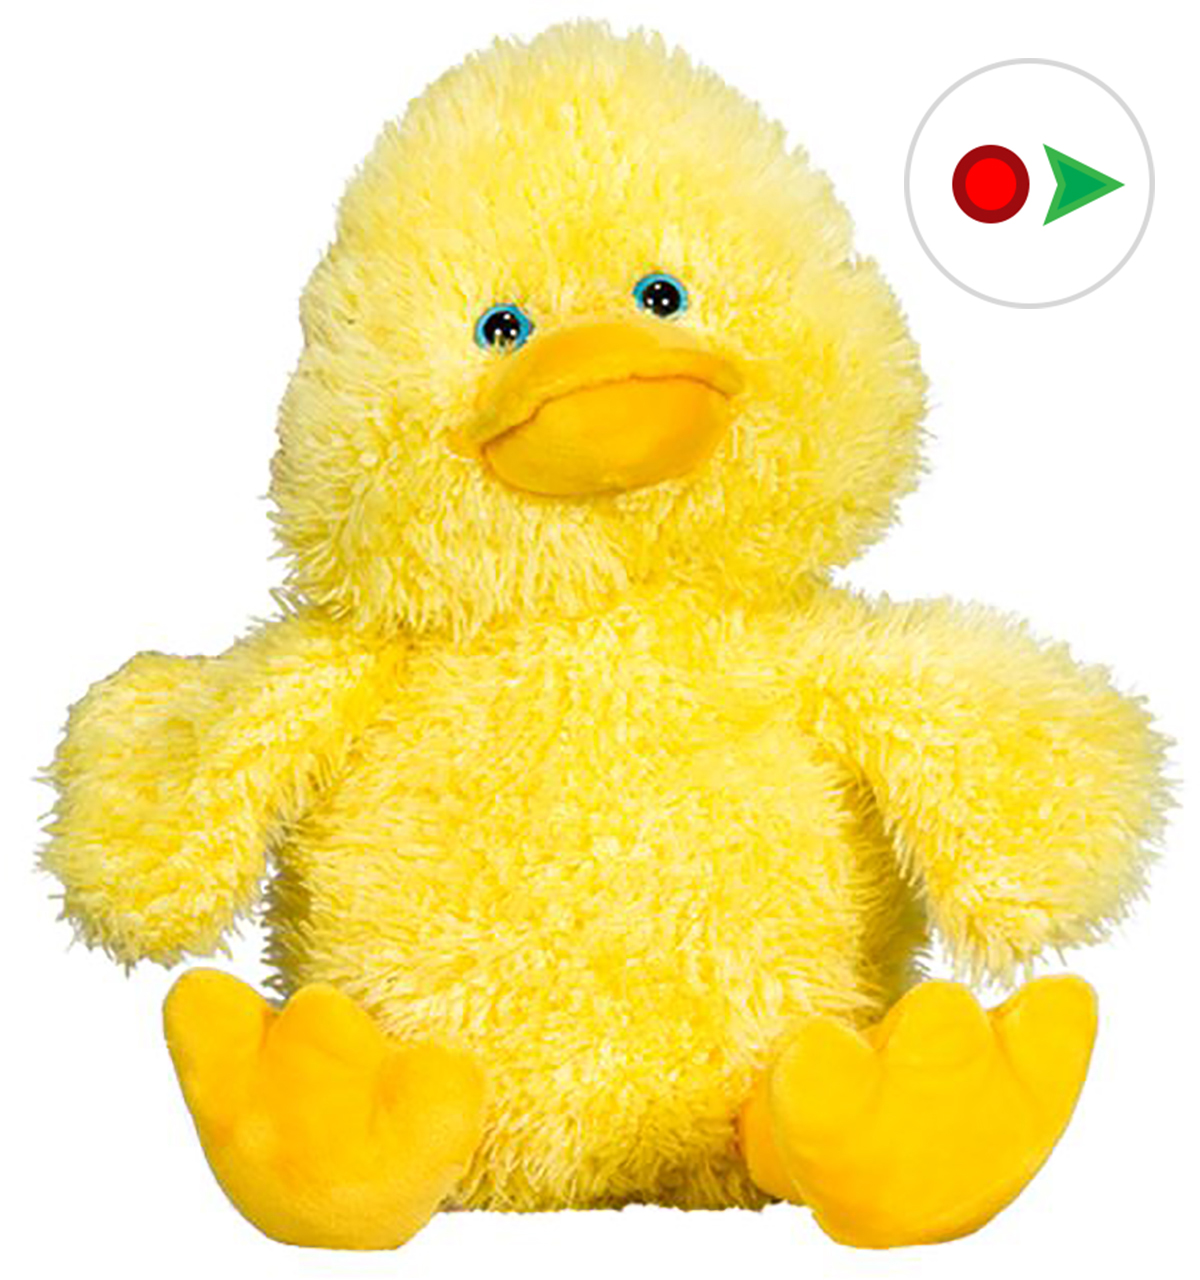 Record Your Own Plush 8 inch - Puddles the Duck - Ready 2 Love in a Few Easy Steps